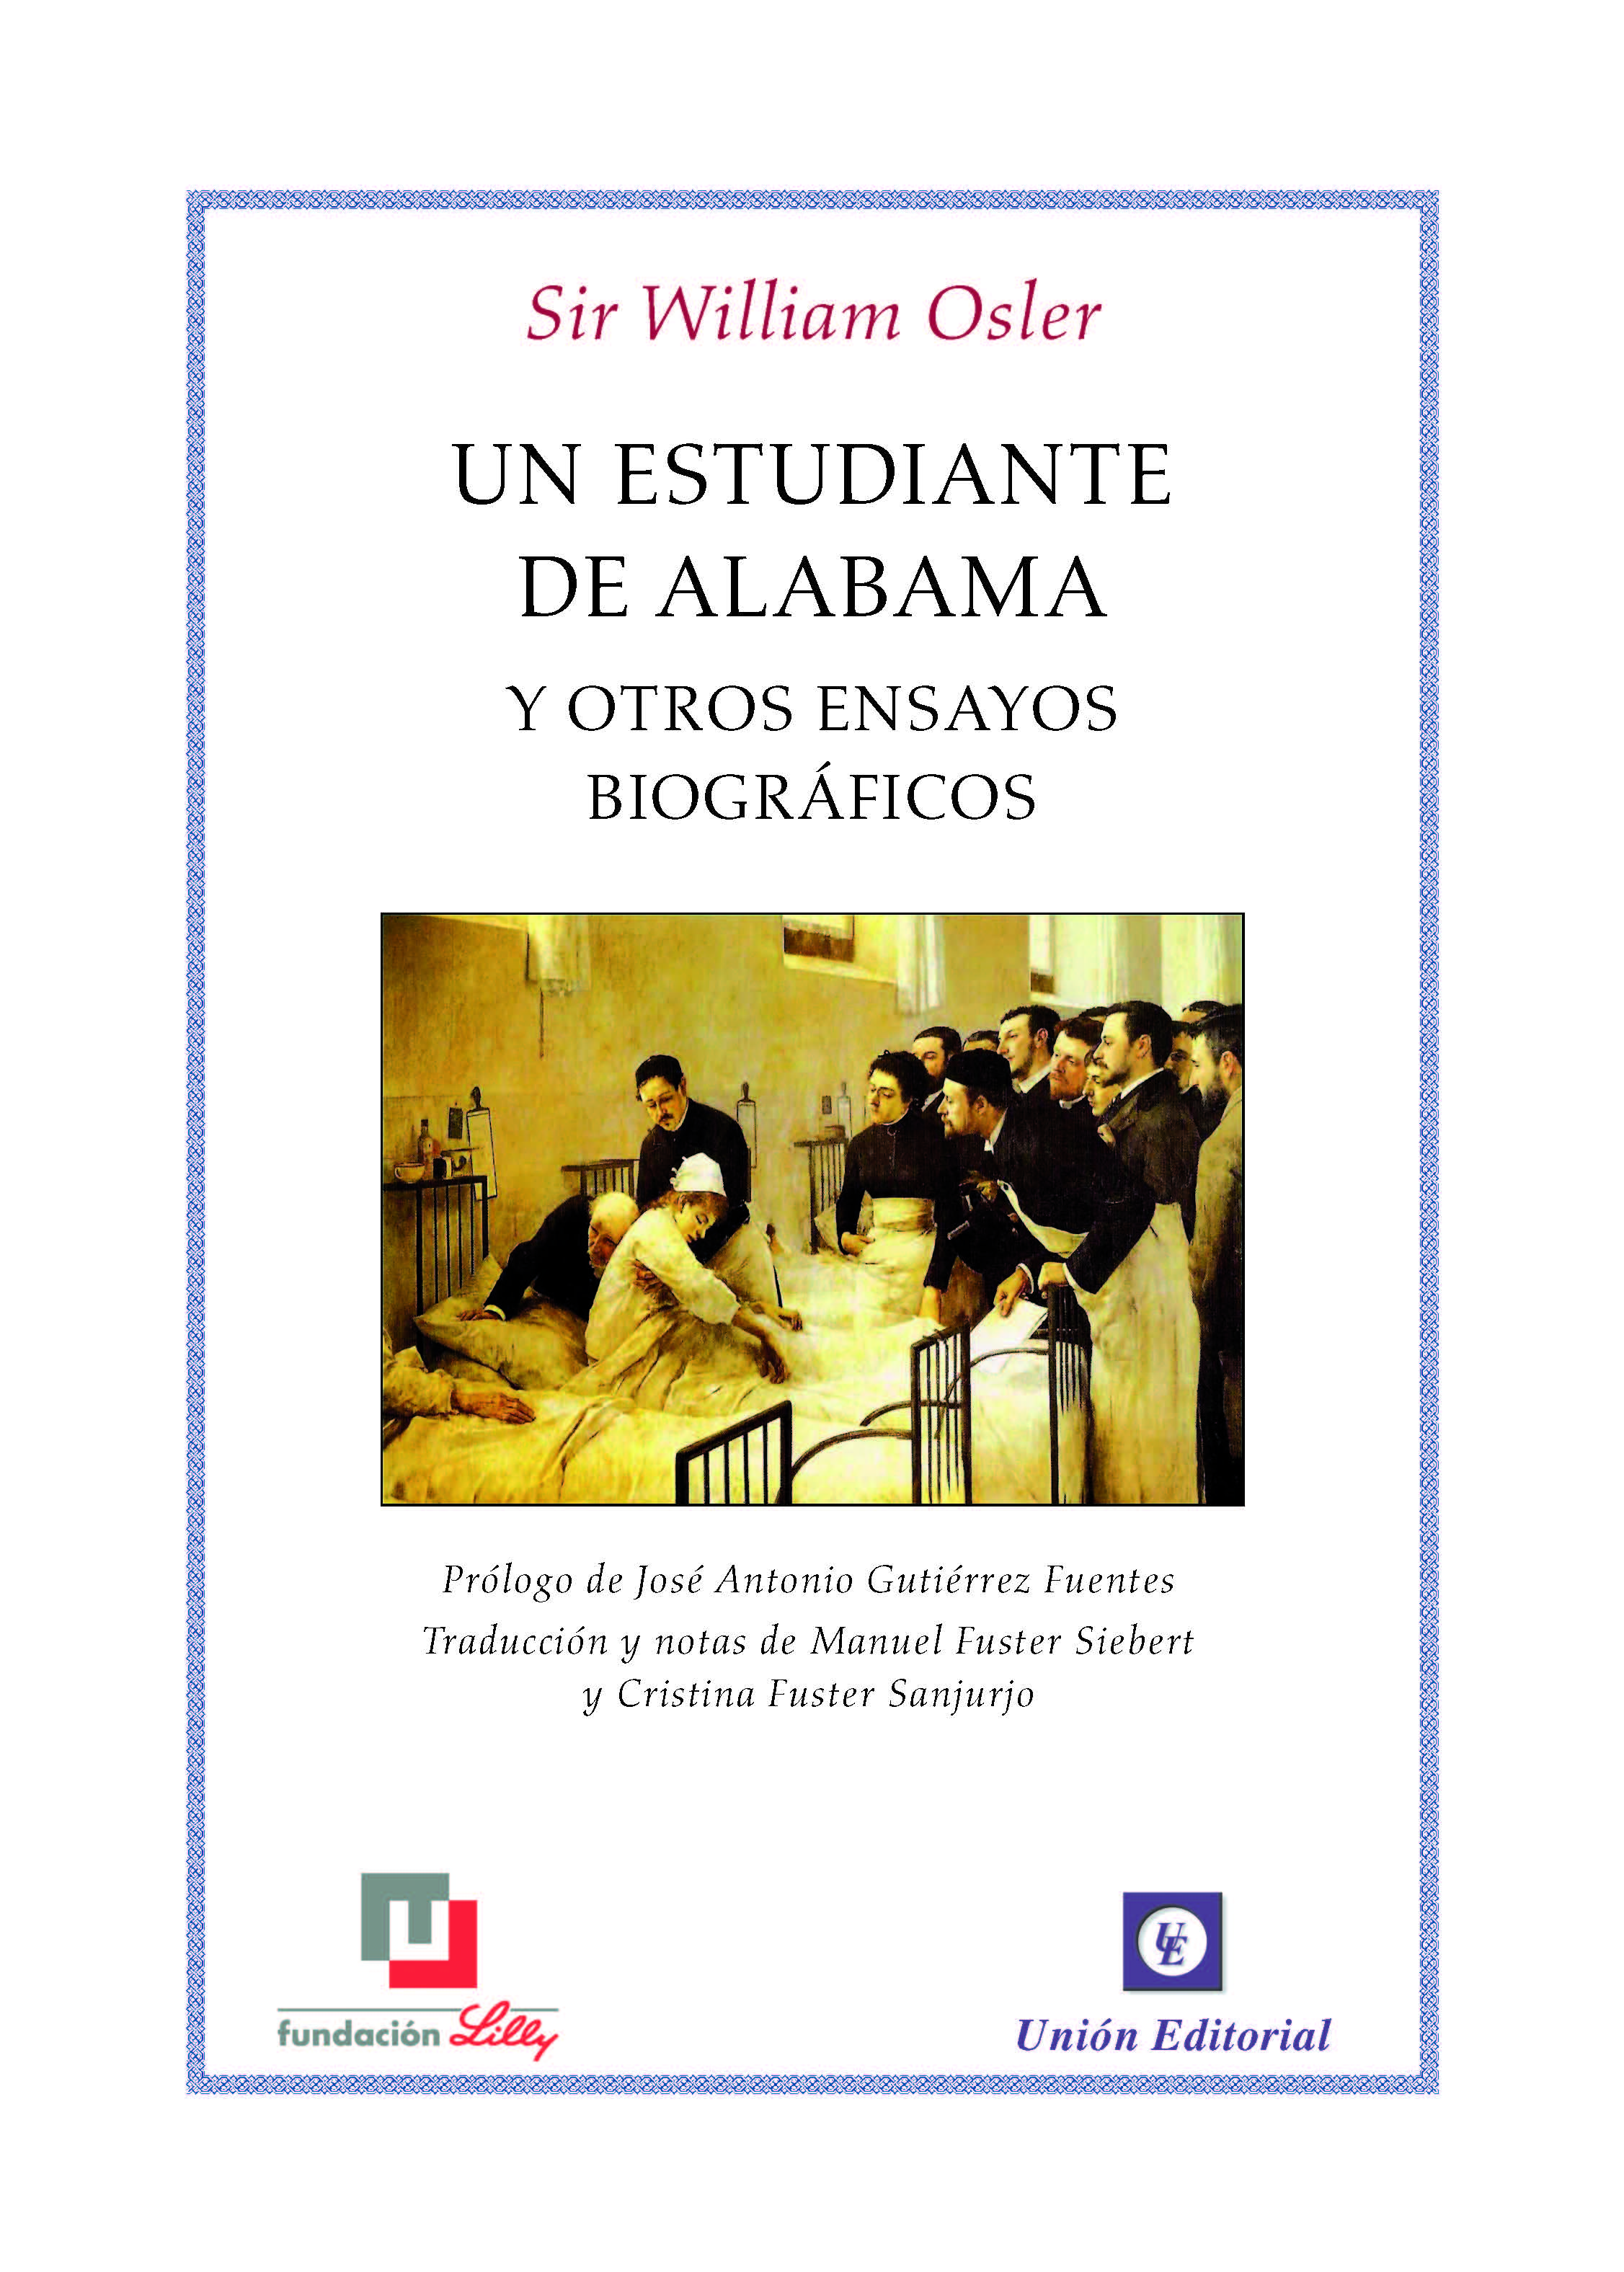 Portada de Un estudiante de Alabama y otros ensayos biográficos de Sir William Osler